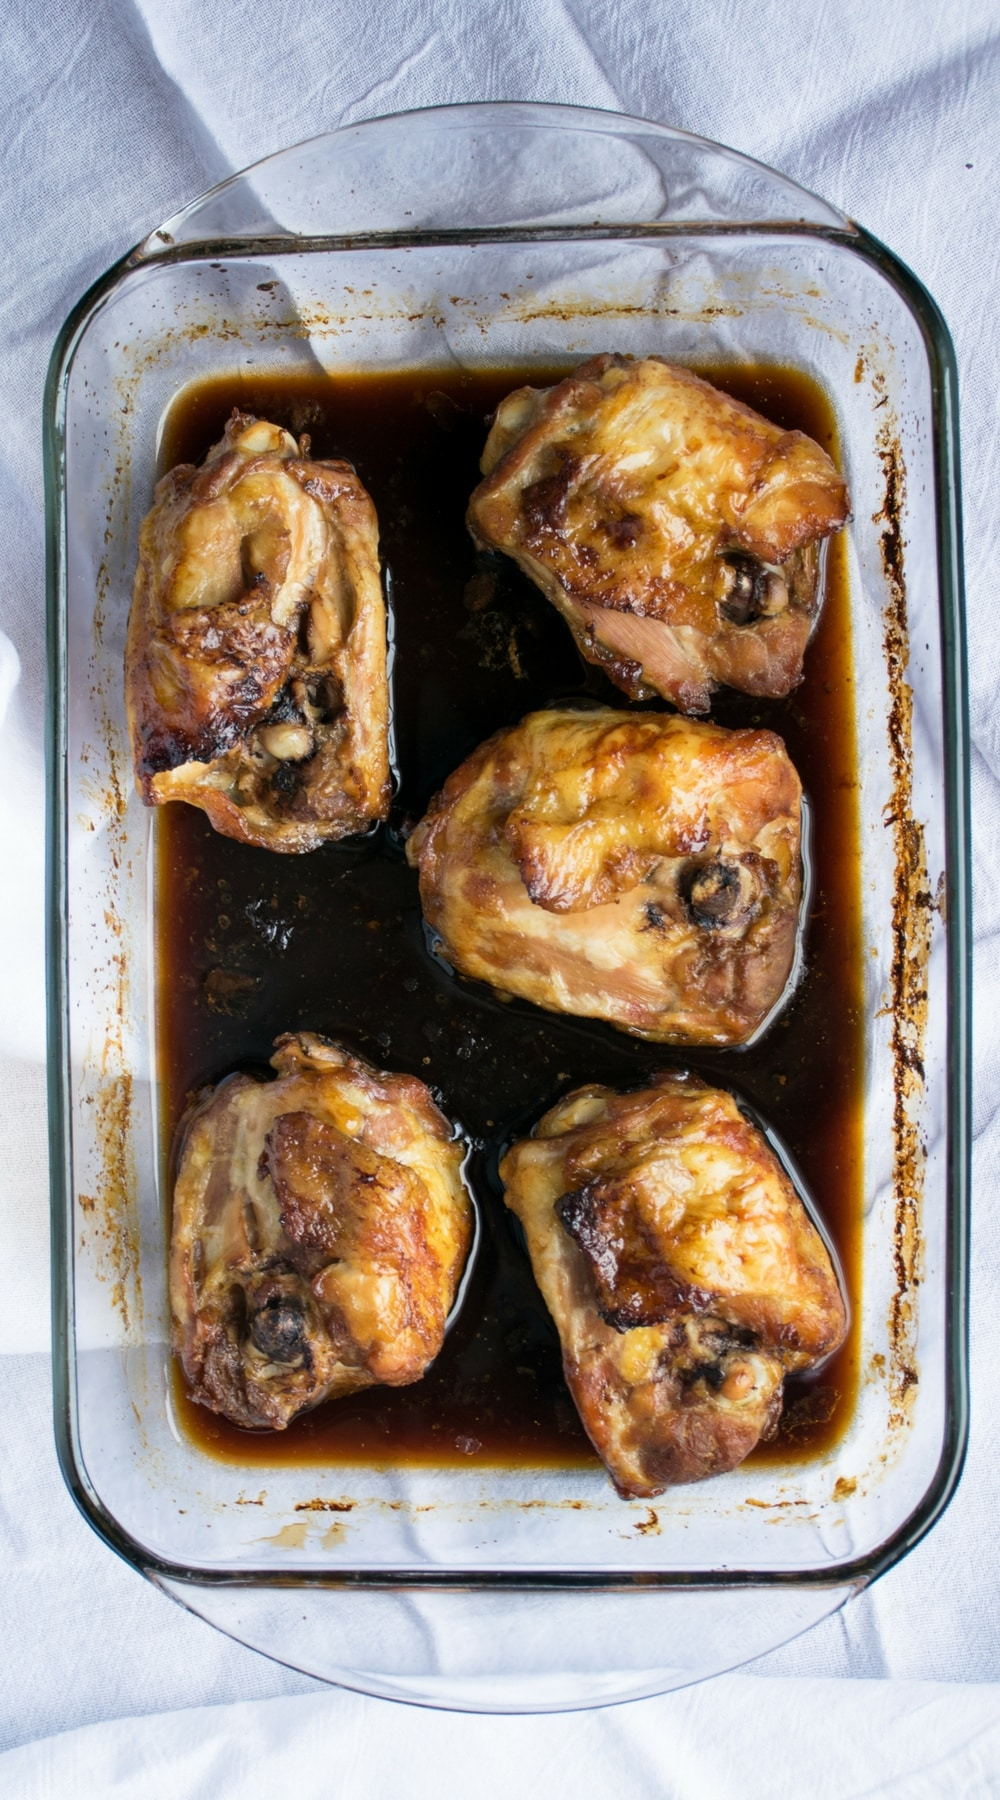 This Brown Sugar Teriyaki Chicken is one of my favorite recipes of all time. As a little girl, I used to watch my mom make this recipe, and now as an adult, it's a favorite in my home. This was one of my grandma's recipes and I am so excited to share it with all of you.